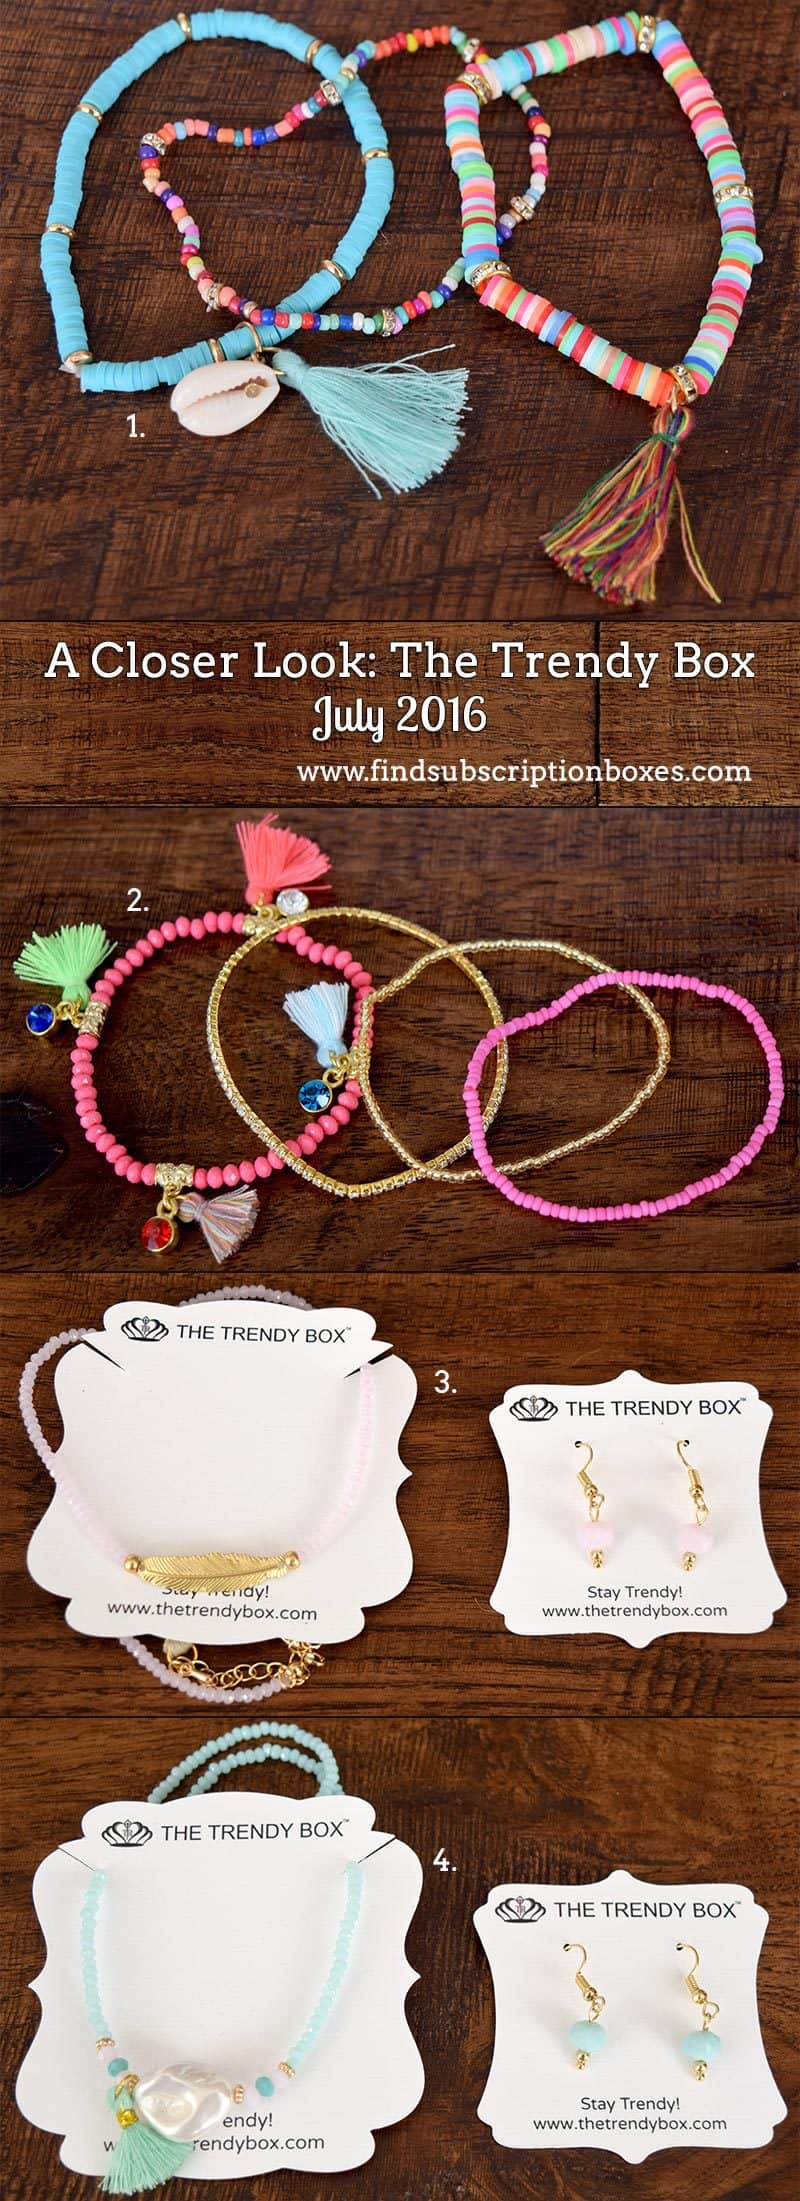 July 2016 The Trendy Box Review - Inside the Box